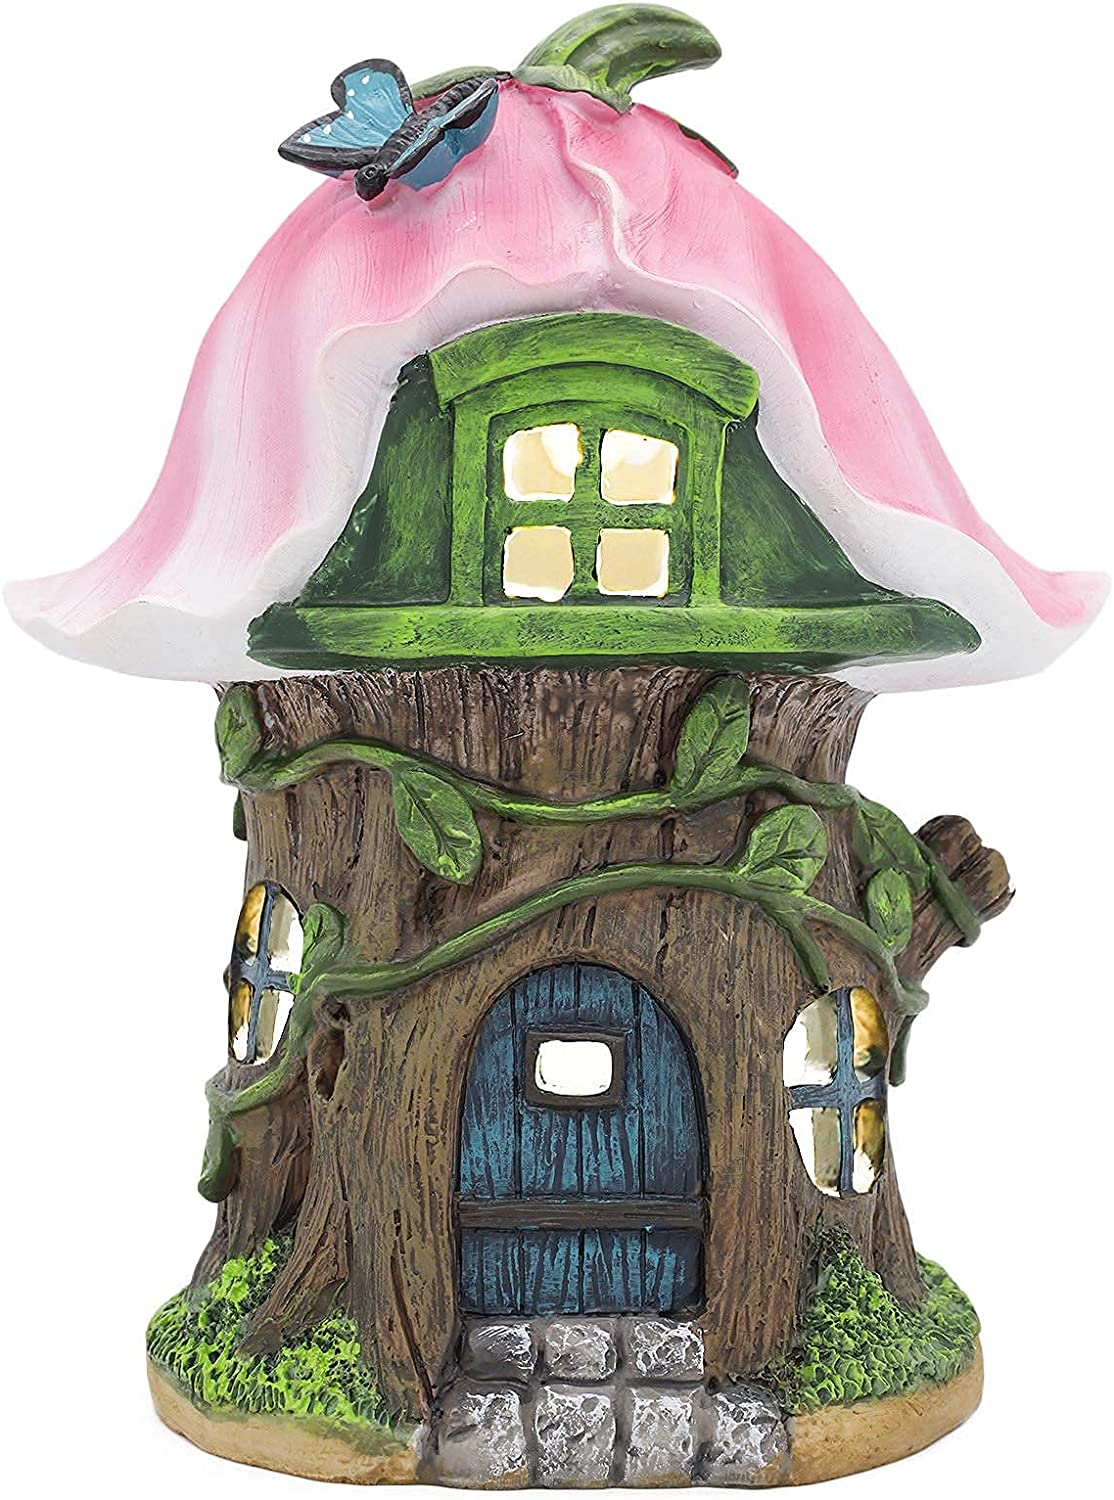 Mushroom House Solar Garden Statues Outdoor Decor, Garden Gnome House with Solar Powered Lights for Patio, Lawn, Yard Art Decoration, Housewarming Gift, 8x6.3x5.9Inch